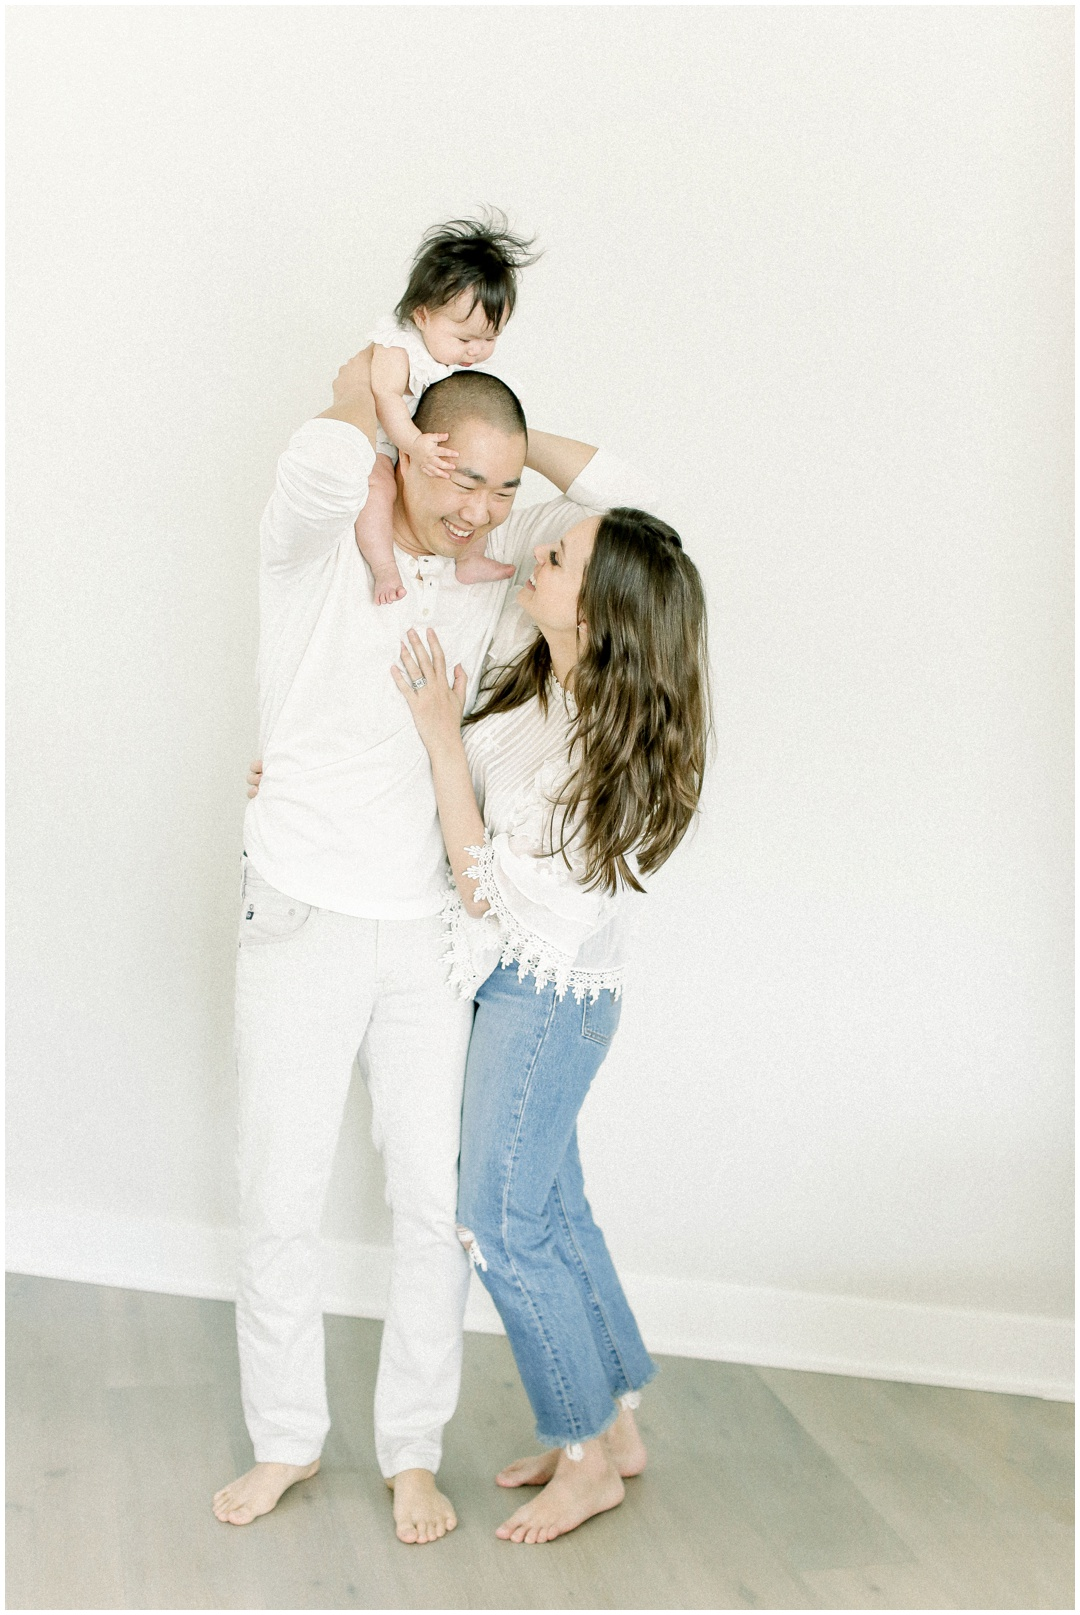 Newport_Beach_Family_Light_airy_Natural_Photographer_Newport_Beach_In-Home_Photographer_Orange_County_Family_Photographer_Cori_Kleckner_Photography_Huntington_Beach_Photographer_Family_OC_Newborn_Cassidee_Ma_Peter_Ma_Family__3119.jpg